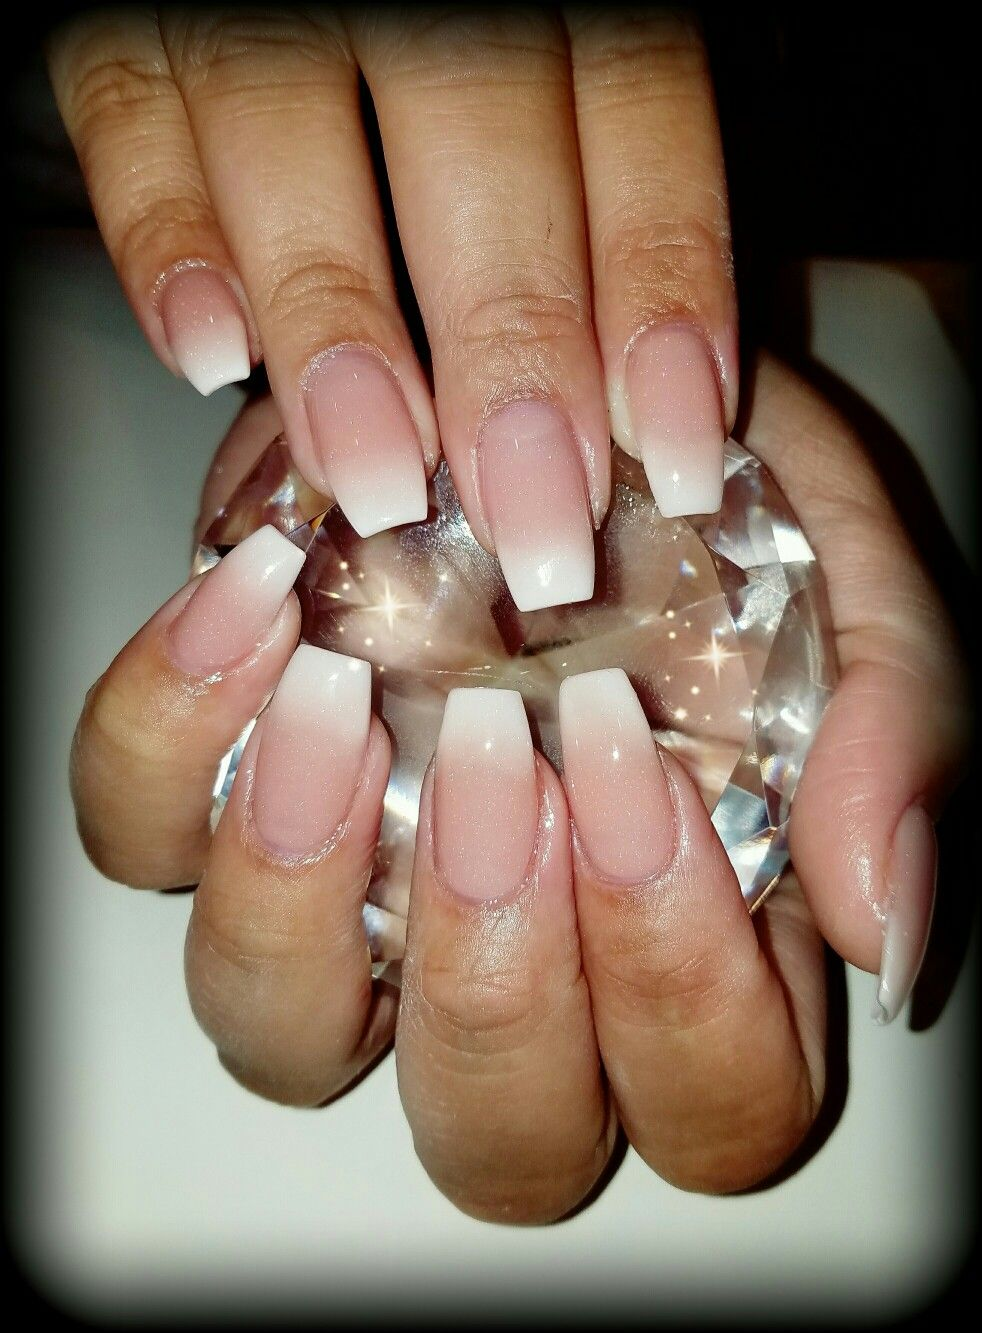 Pin by Stacy McCall on Nailed! it!!! | Pinterest | Sns nails ...